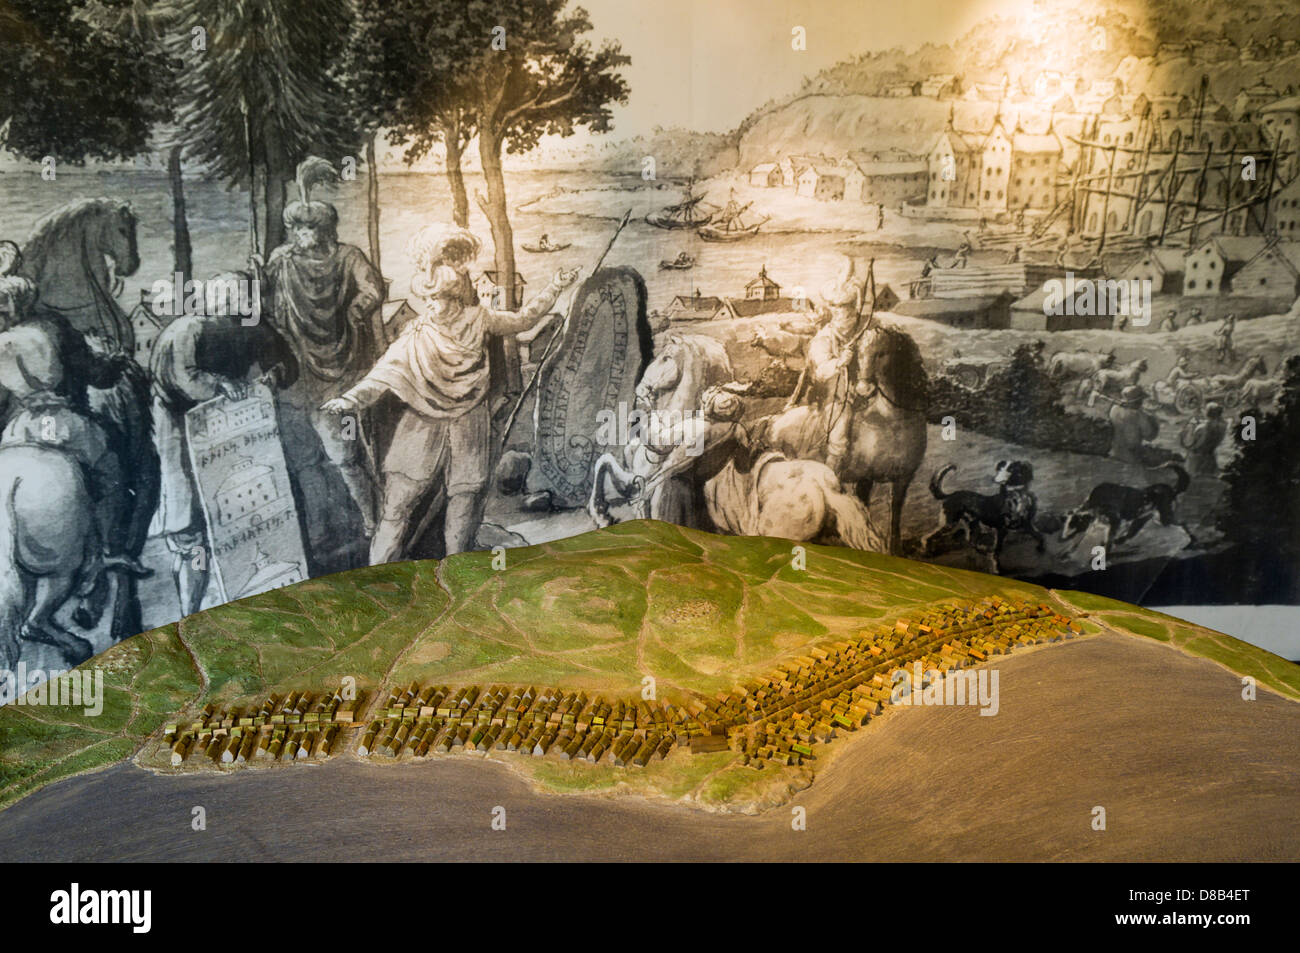 Model at Sigtuna Museum showing what Sigtuna in Sweden used to look like during the Medieval Times. - Stock Image